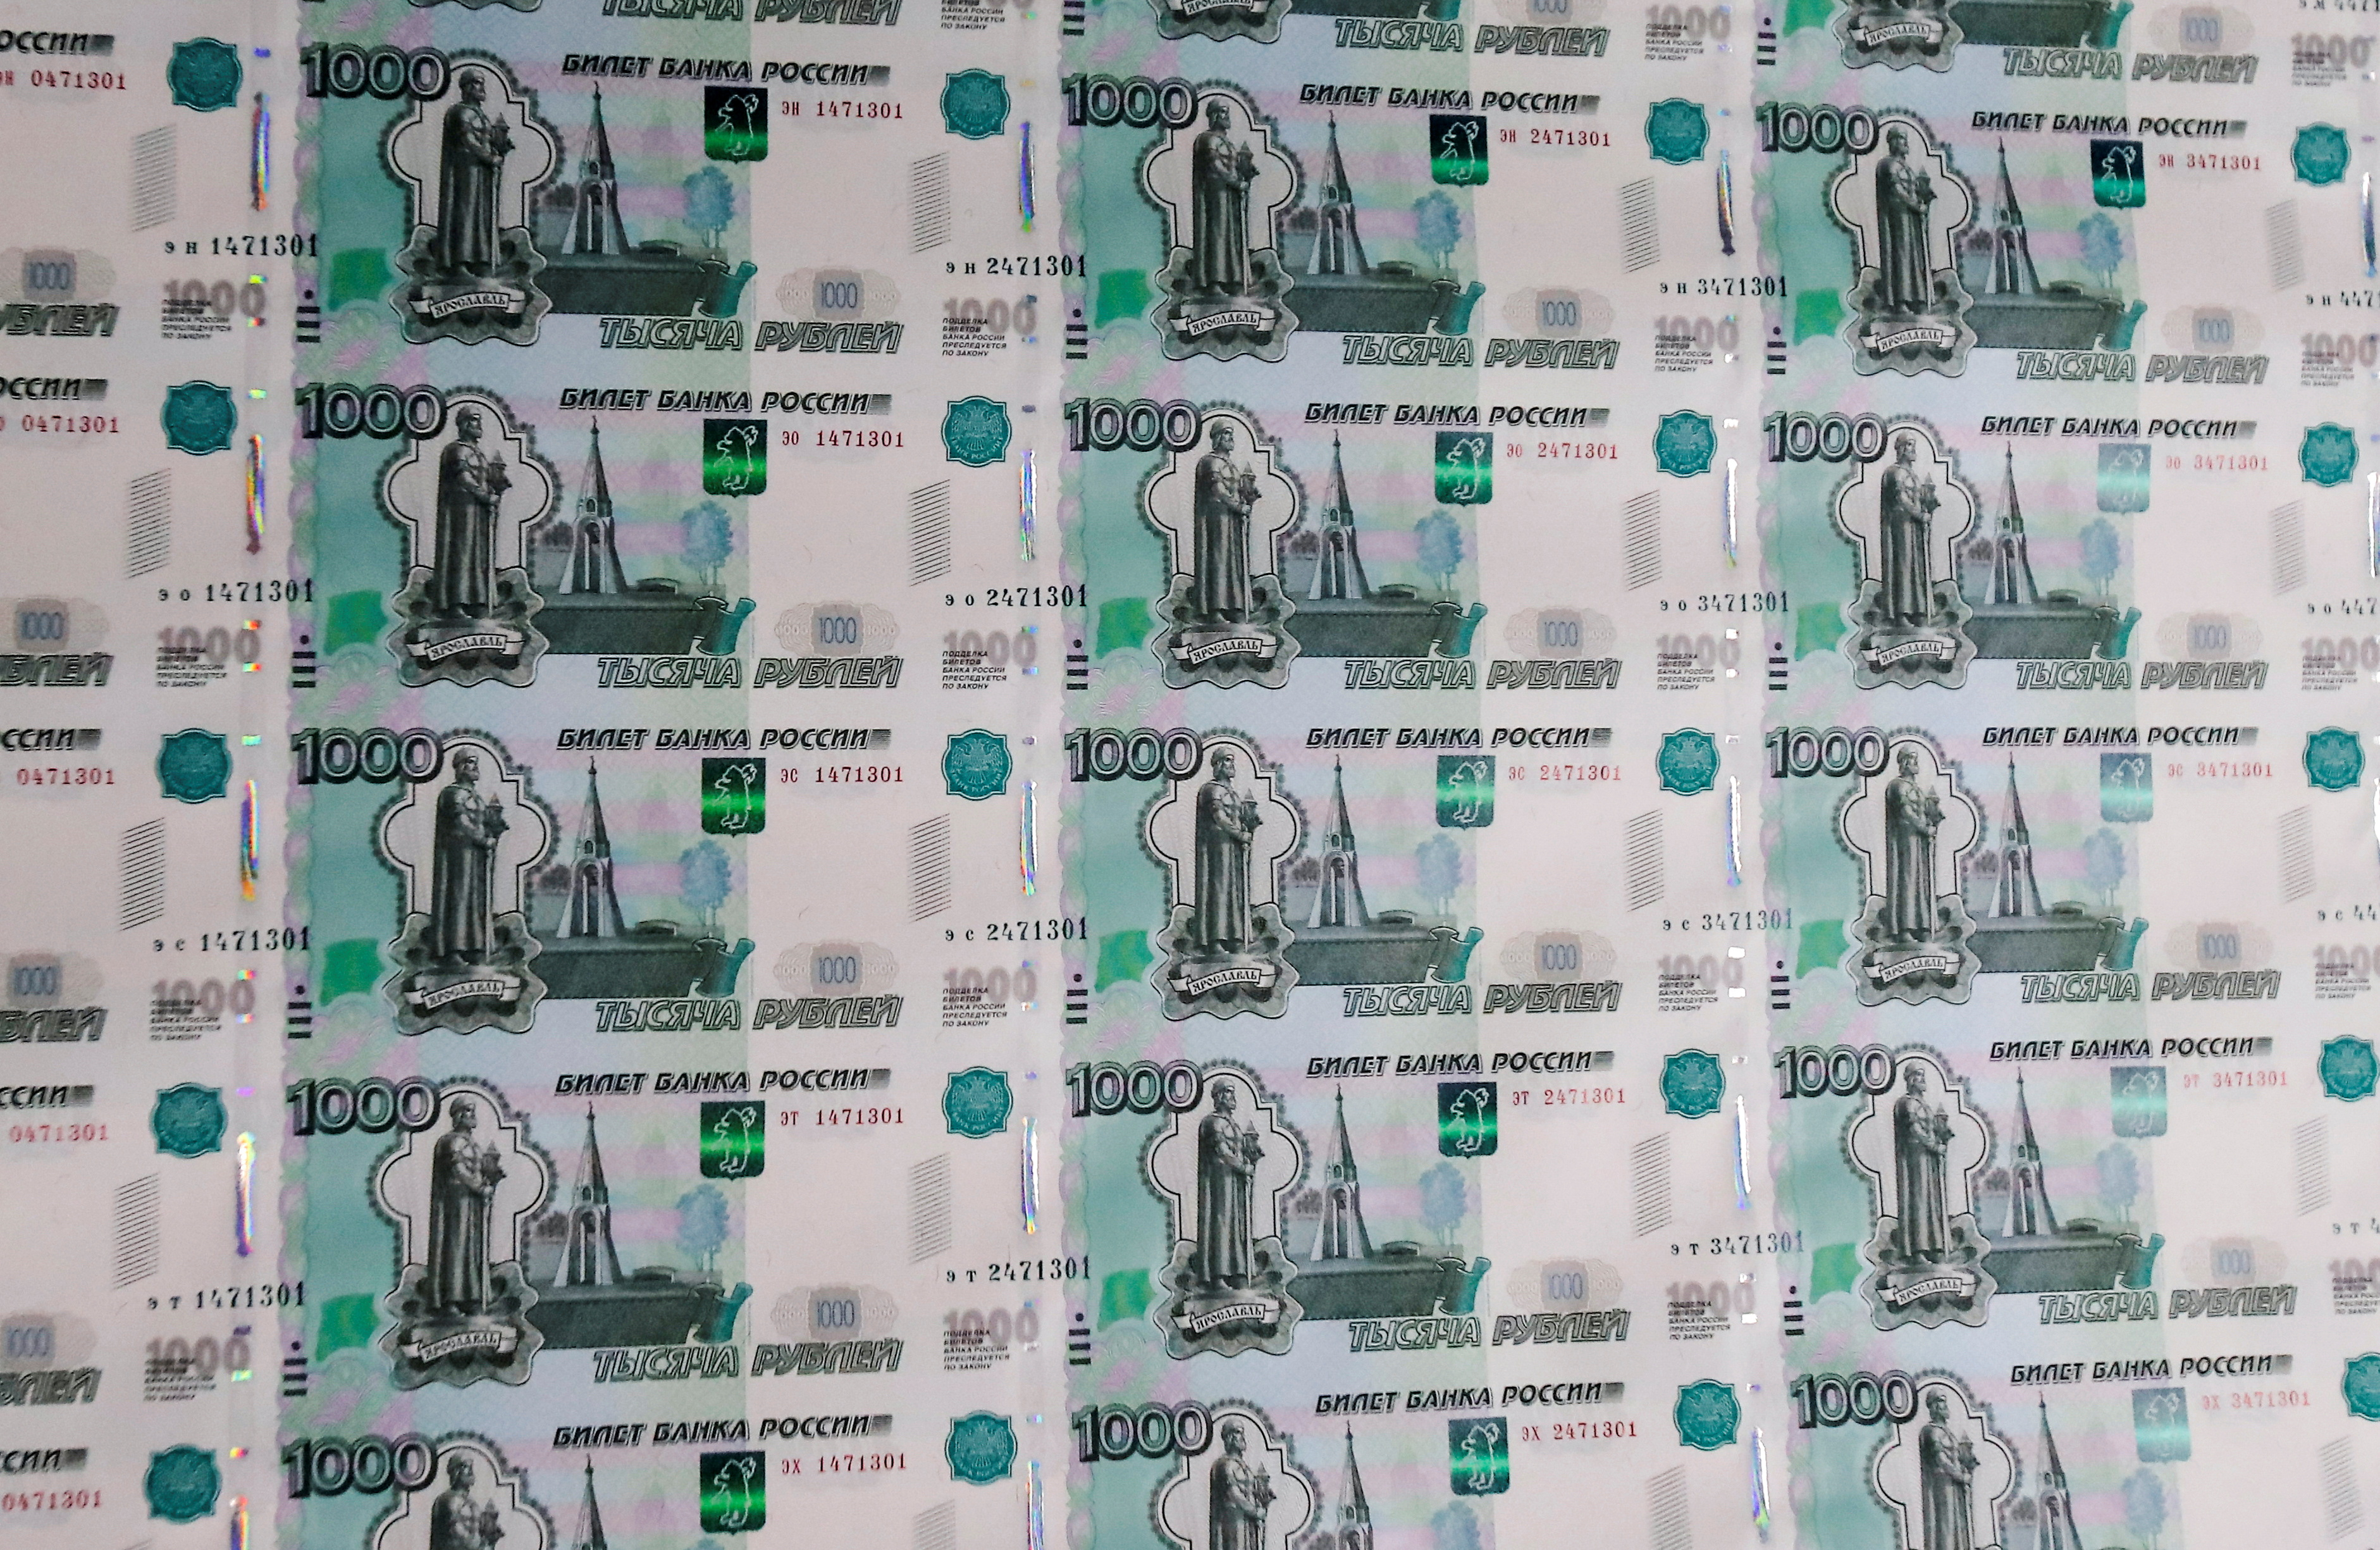 A sheet of 1000 Russian Rouble notes at Goznak printing factory in Moscow, Russia July 11, 2019. REUTERS/Maxim Shemetov/File Photo